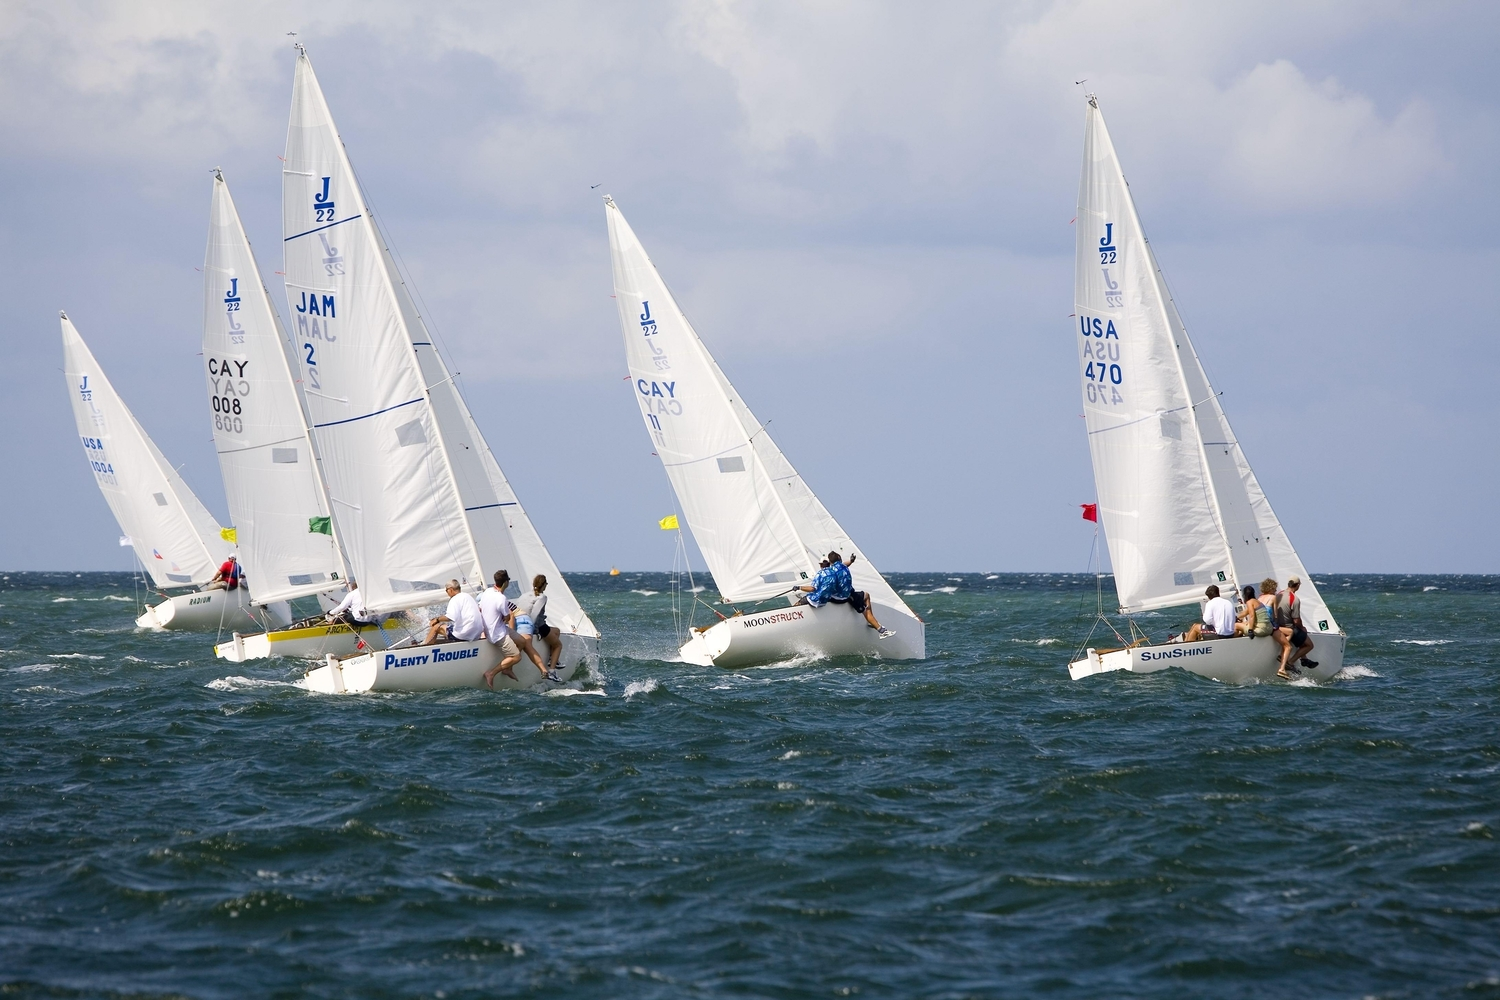 Group of sailing boats out on the open ocean